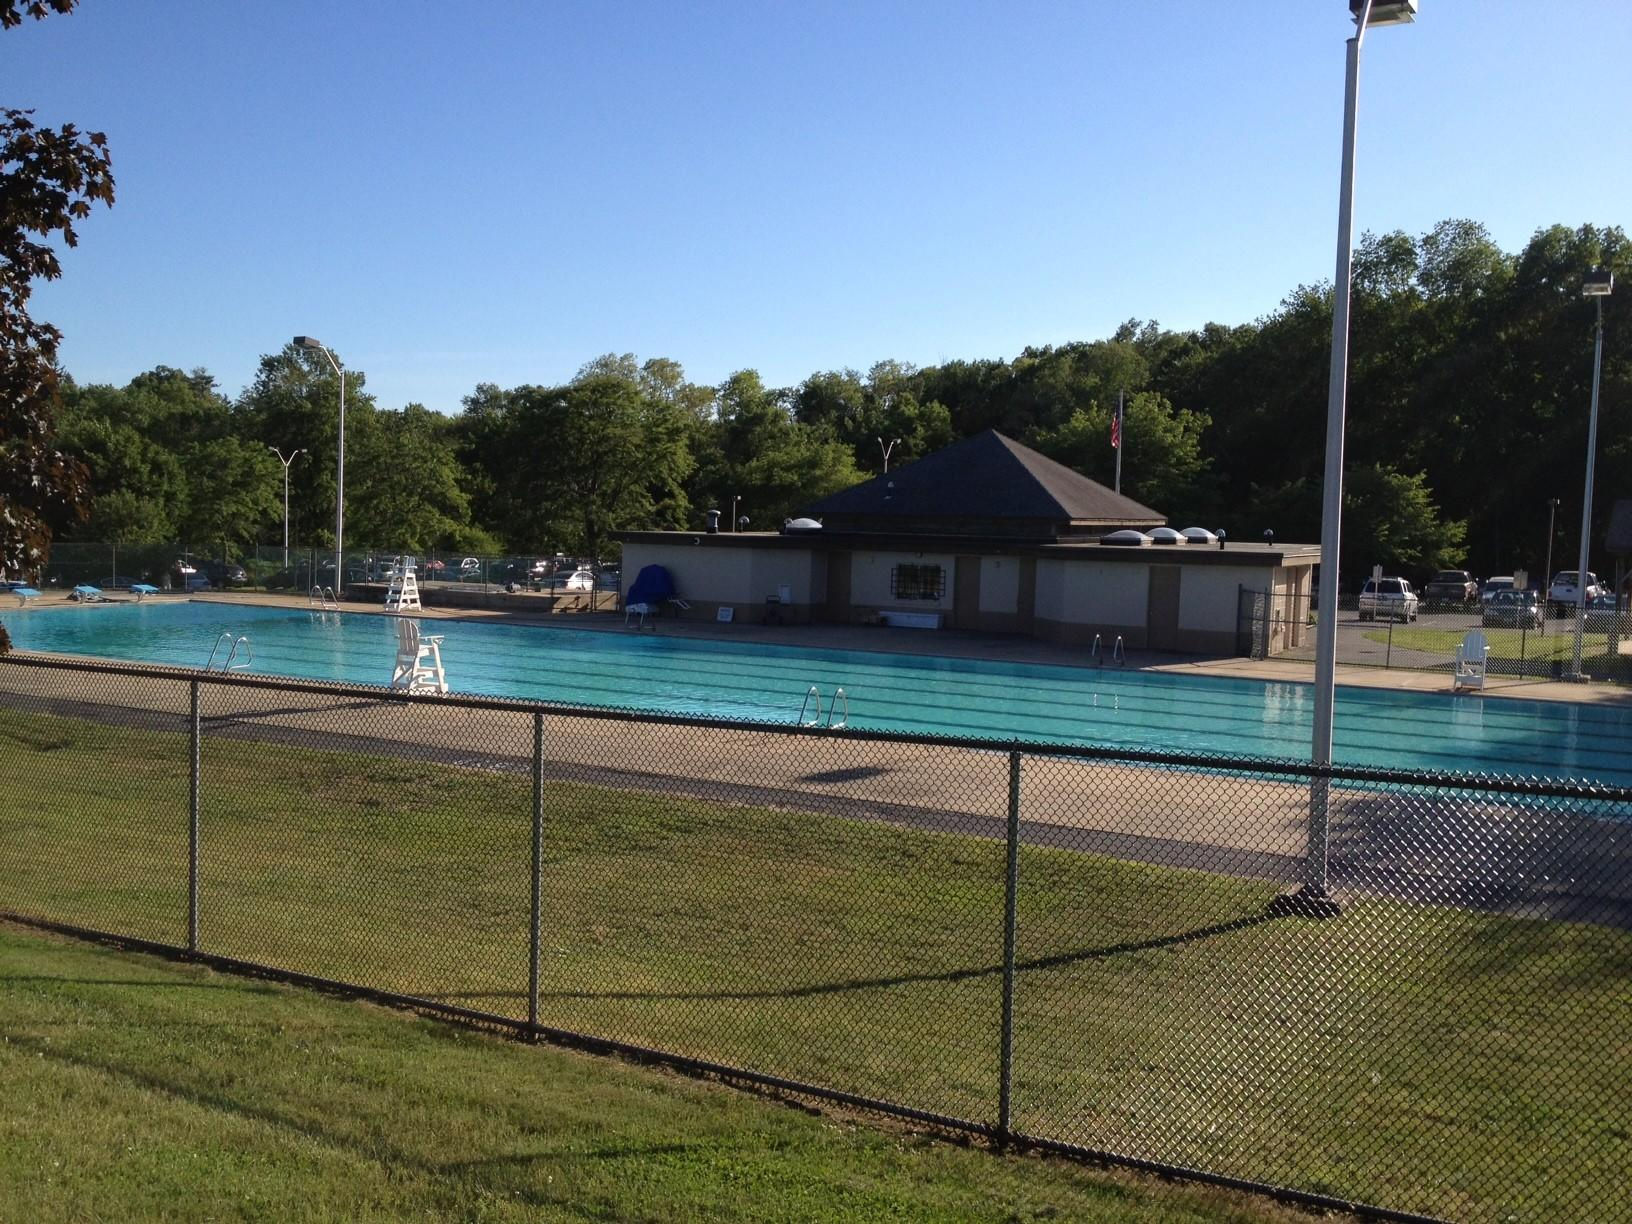 The pool at Mills Pond Park in Canton. The board of selectmen have approved $113,600 to hire a contractor who will replace the deck of the pool.